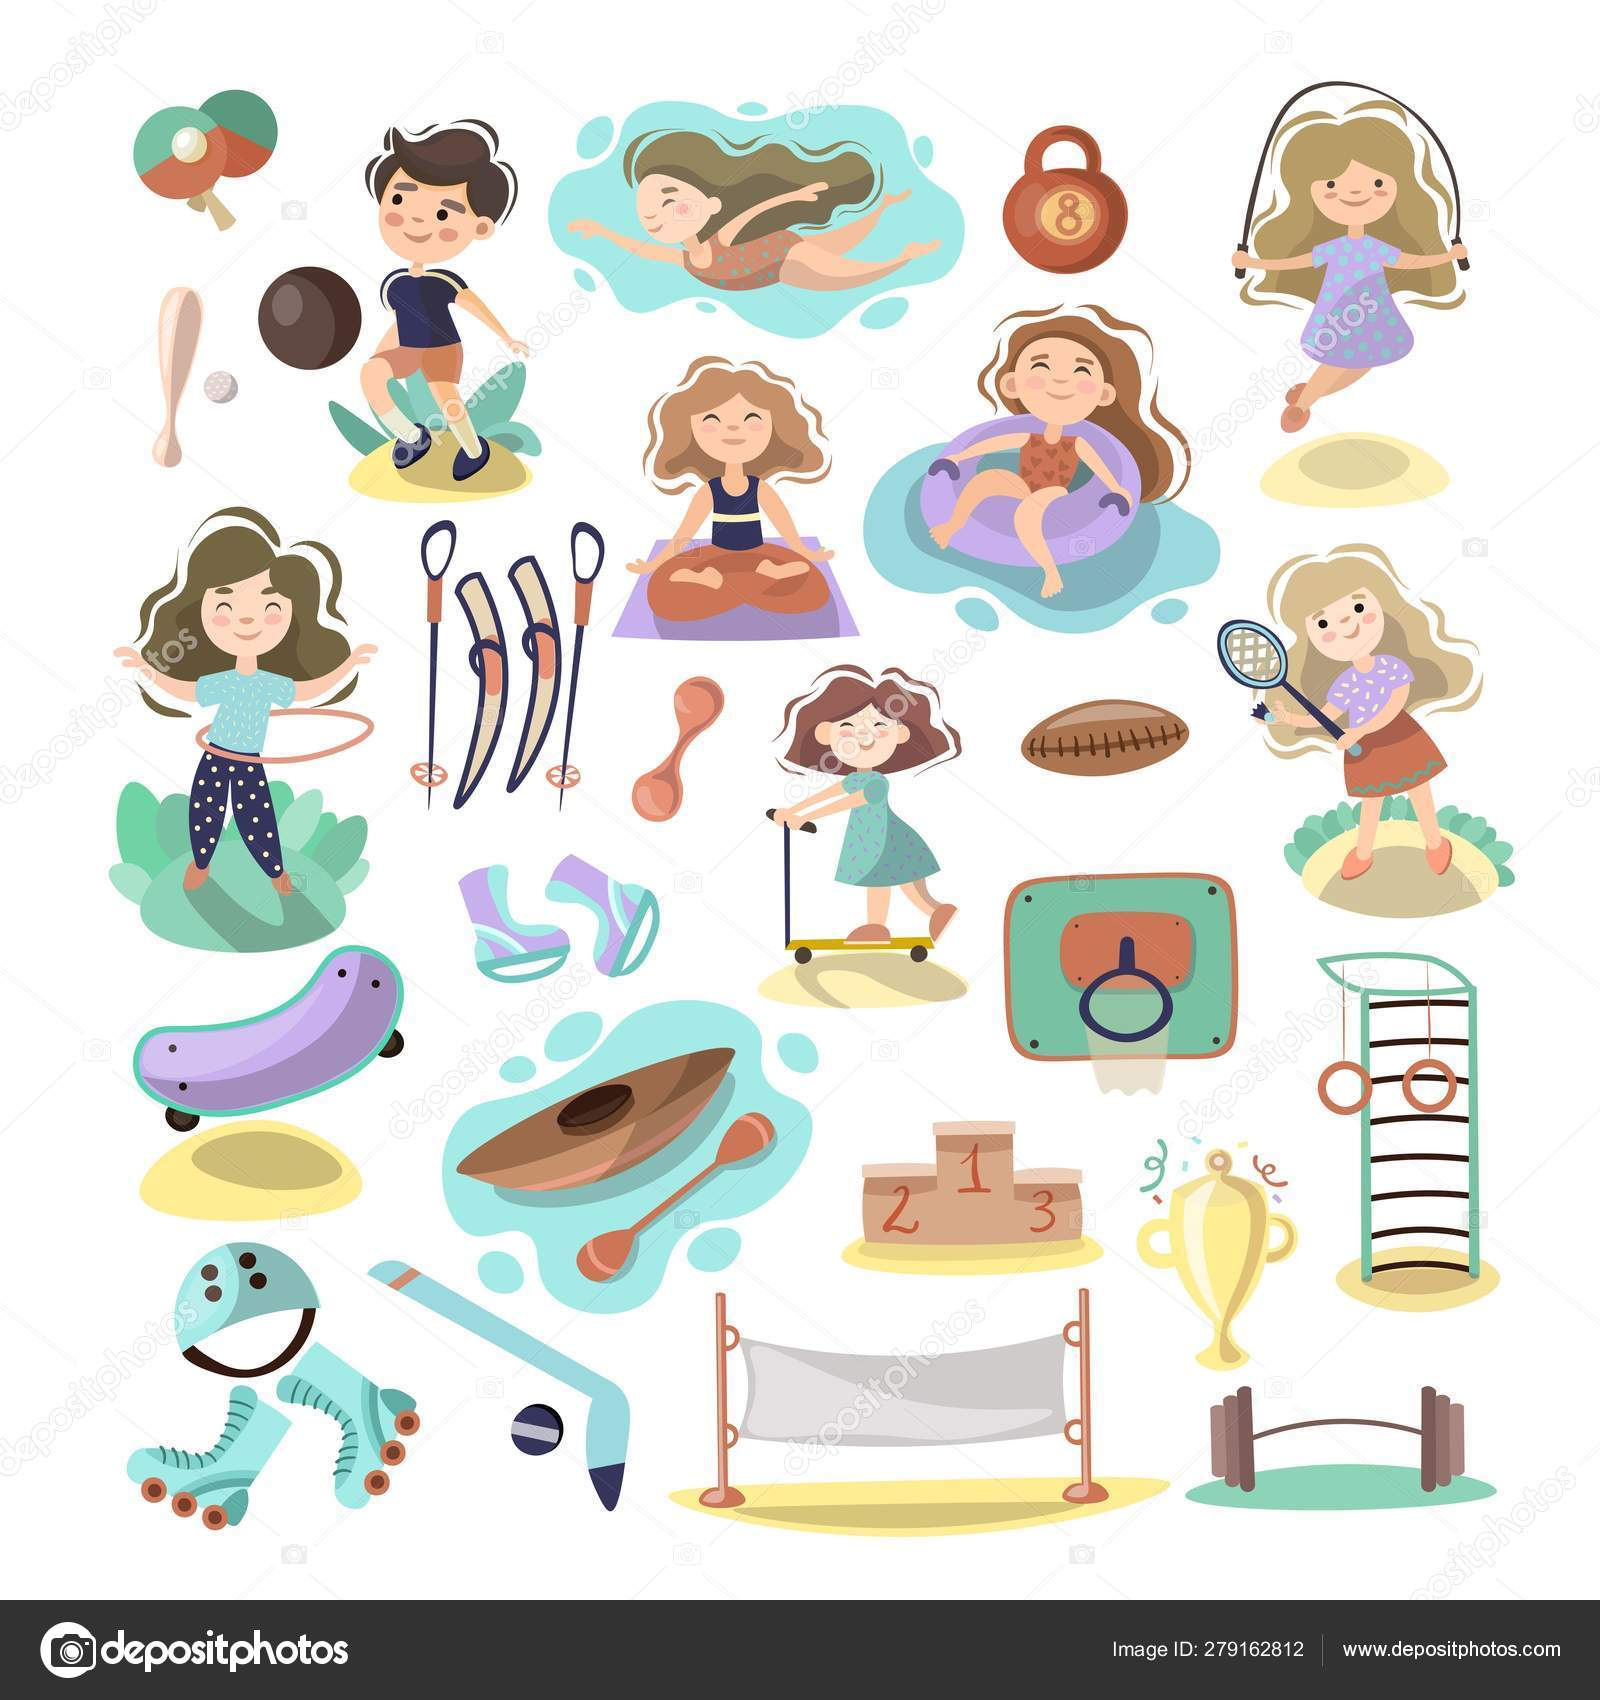 Kids Doing Sport Games Vector Cartoon Illustration Playing Jumping Swimming Boys And Girls With Sports Equipment Balls Sport Games And Summer Kids Activities With Equipment On White Background Stock Vector C